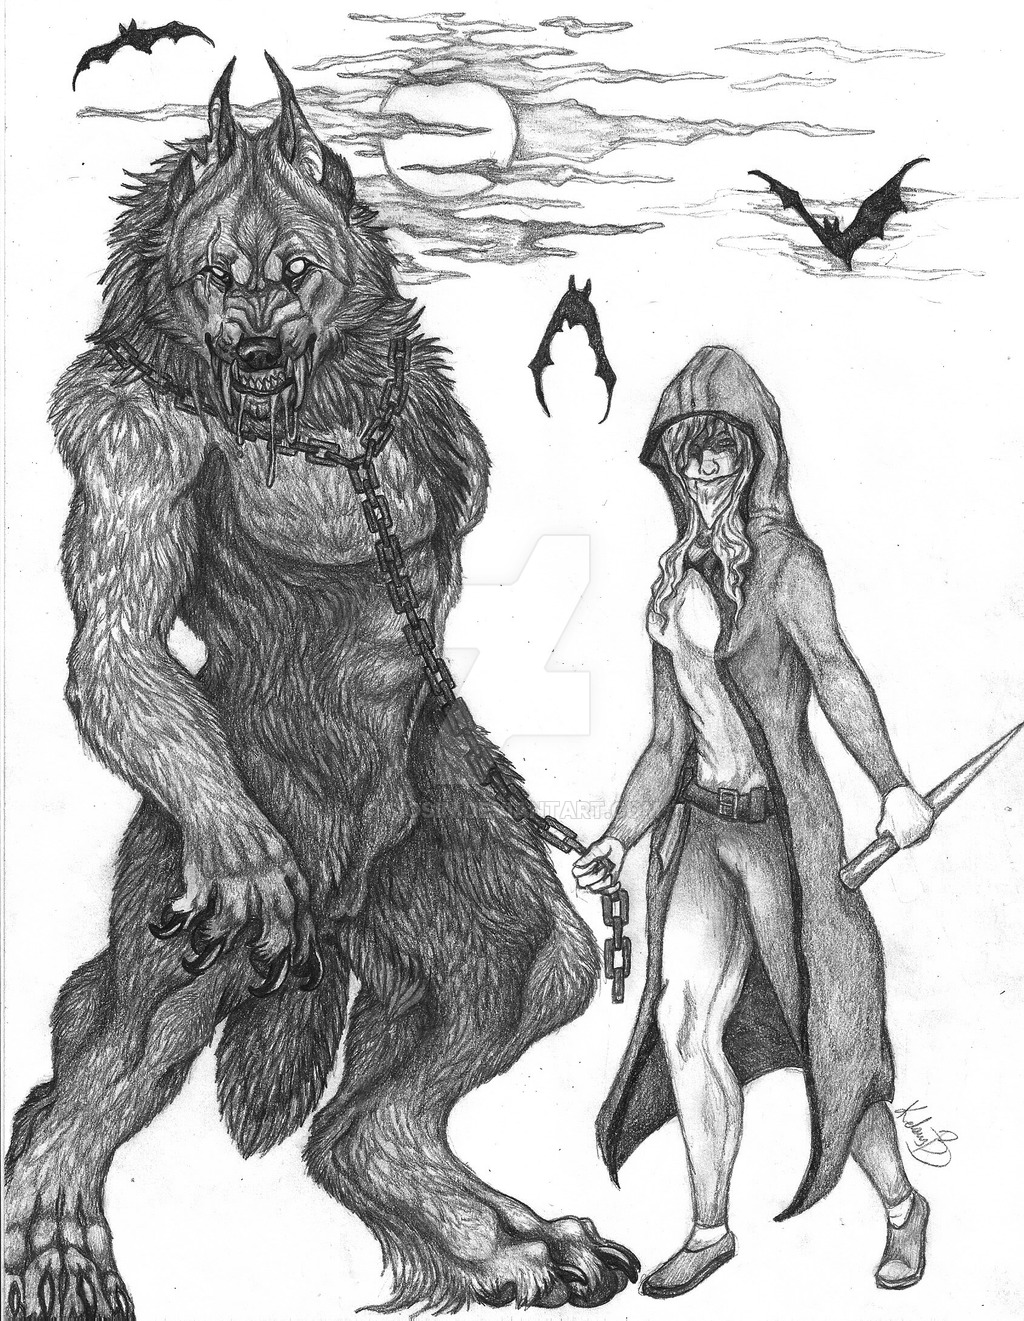 Drawn wolfman human love And vampire her on sioSIN